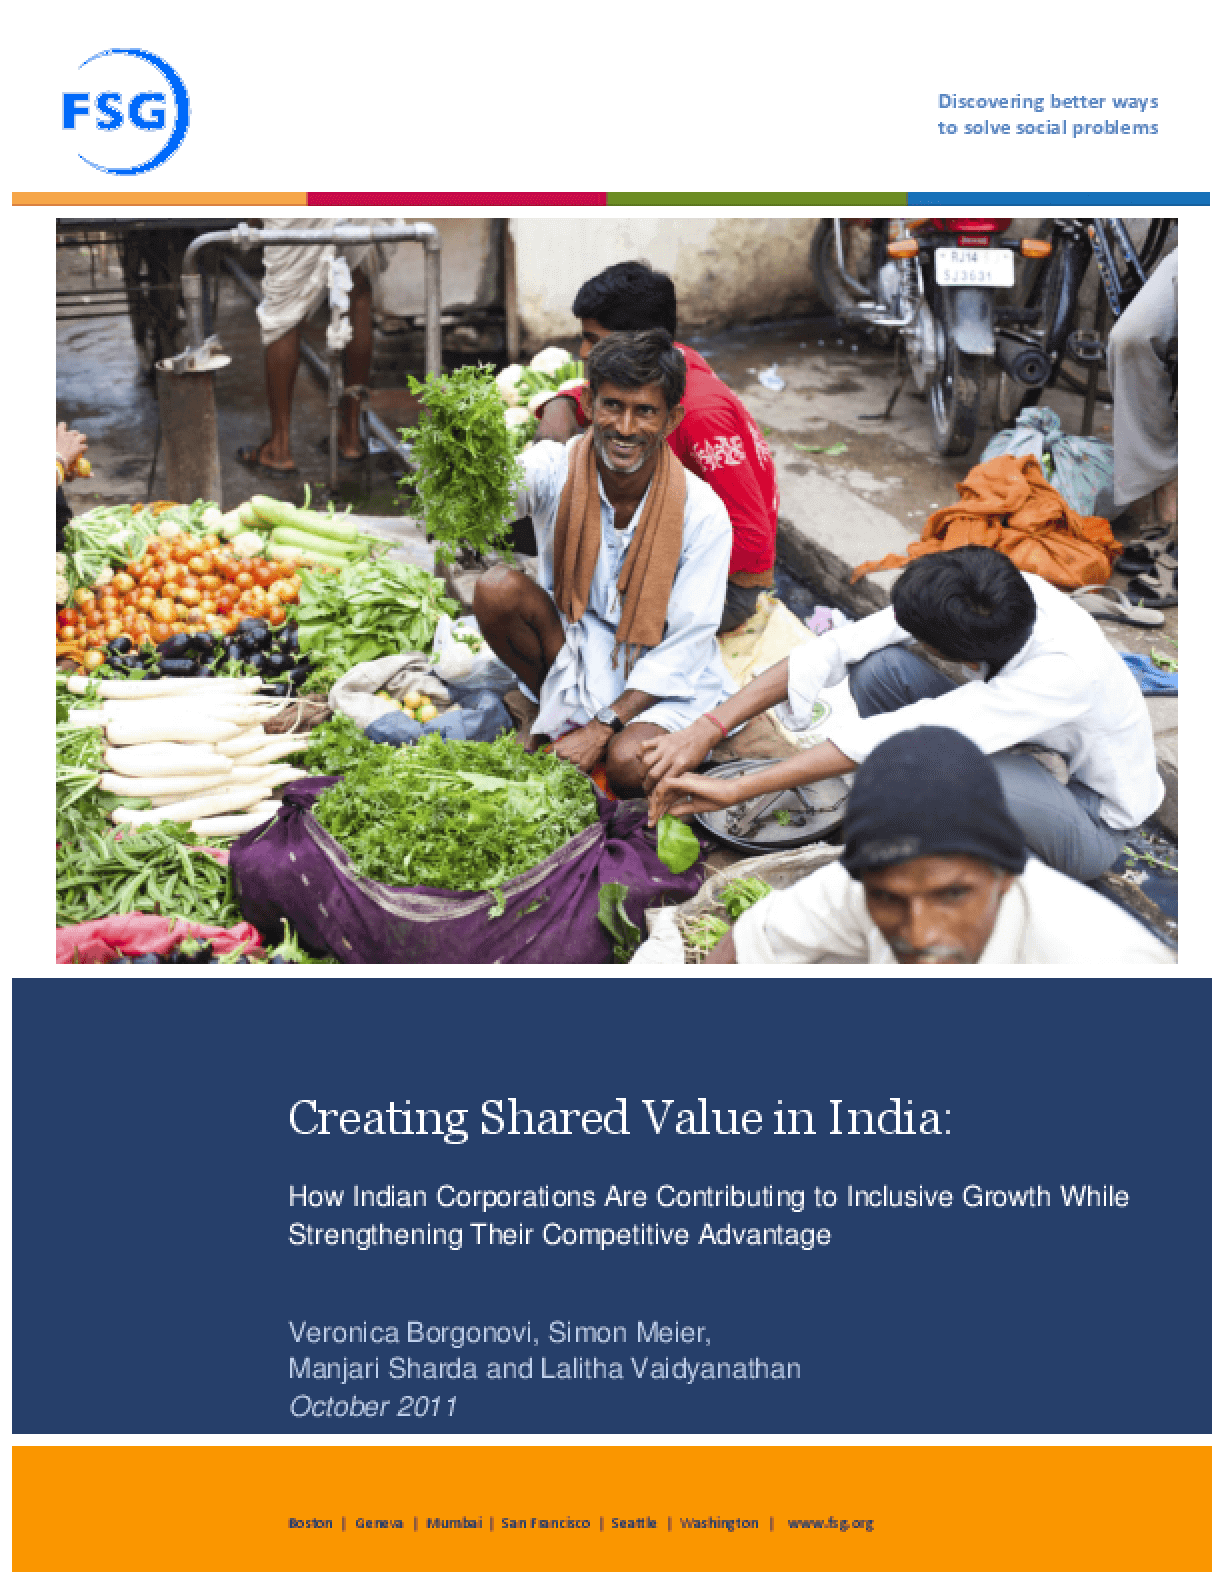 Creating Shared Value in India: How Indian Corporations Are Contributing to Inclusive Growth While Strengthening Their Competitive Advantage